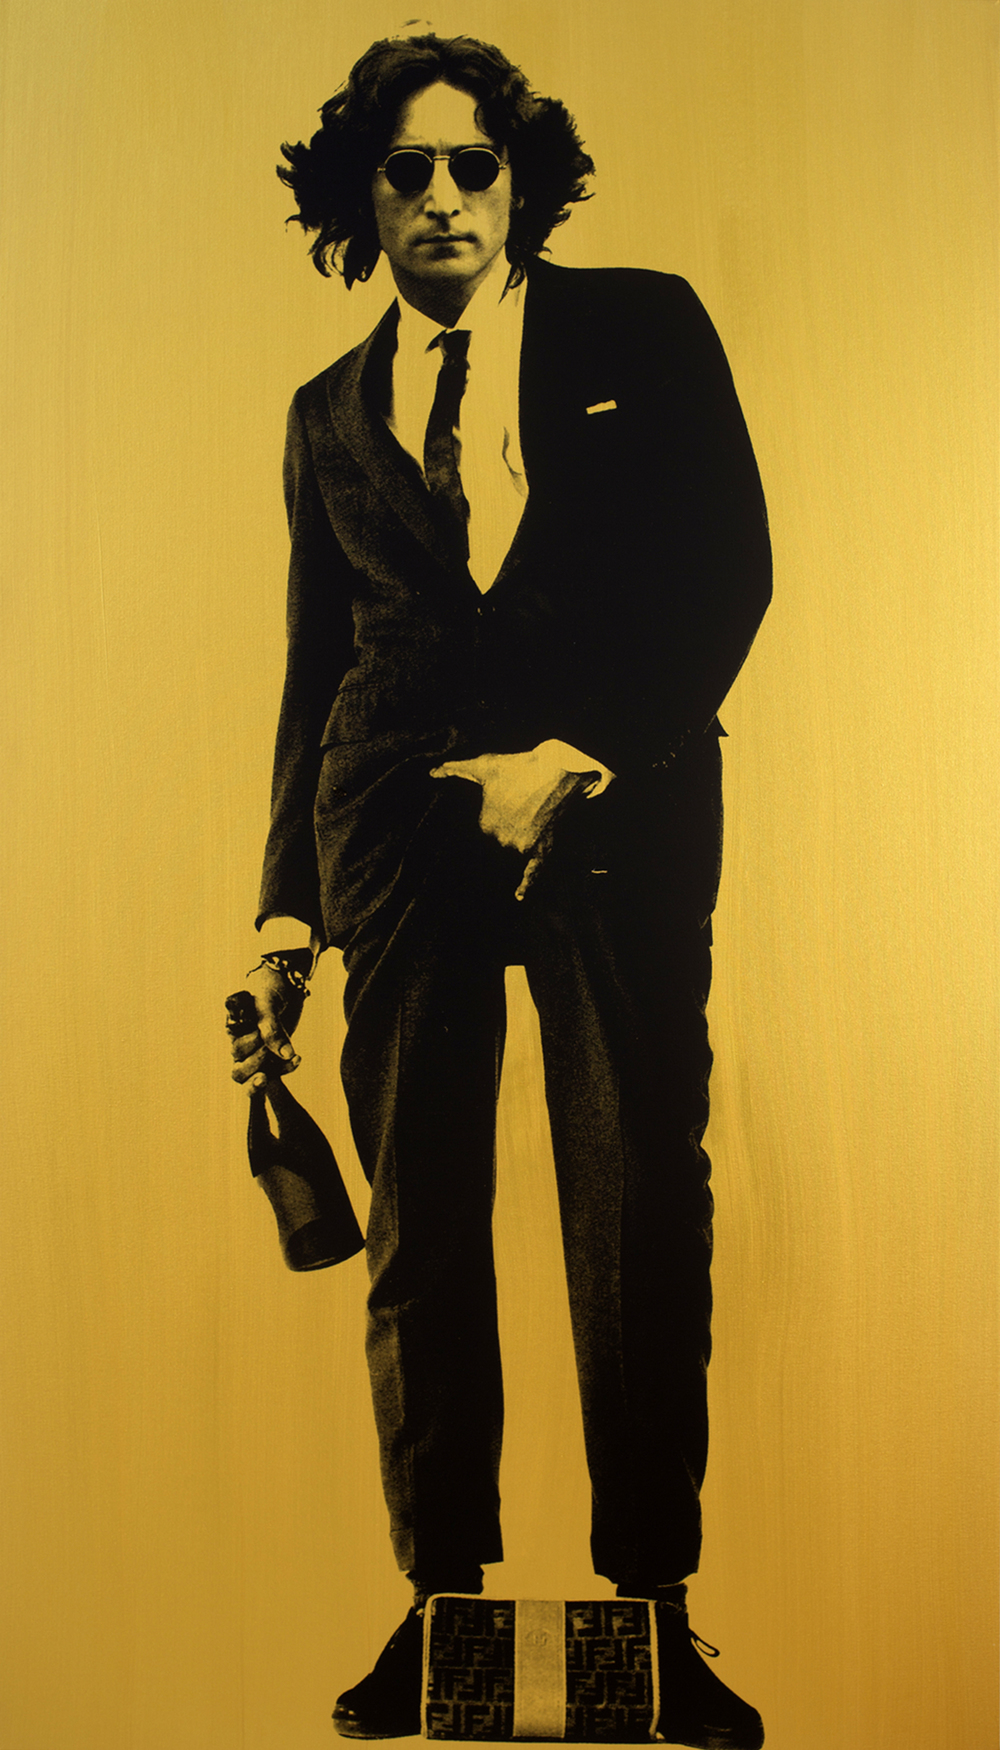 "John Lennon (Gold)_84"" x 48""_Silkscreen and Acrylic on Canvas_$15,000.00_2015.jpg"